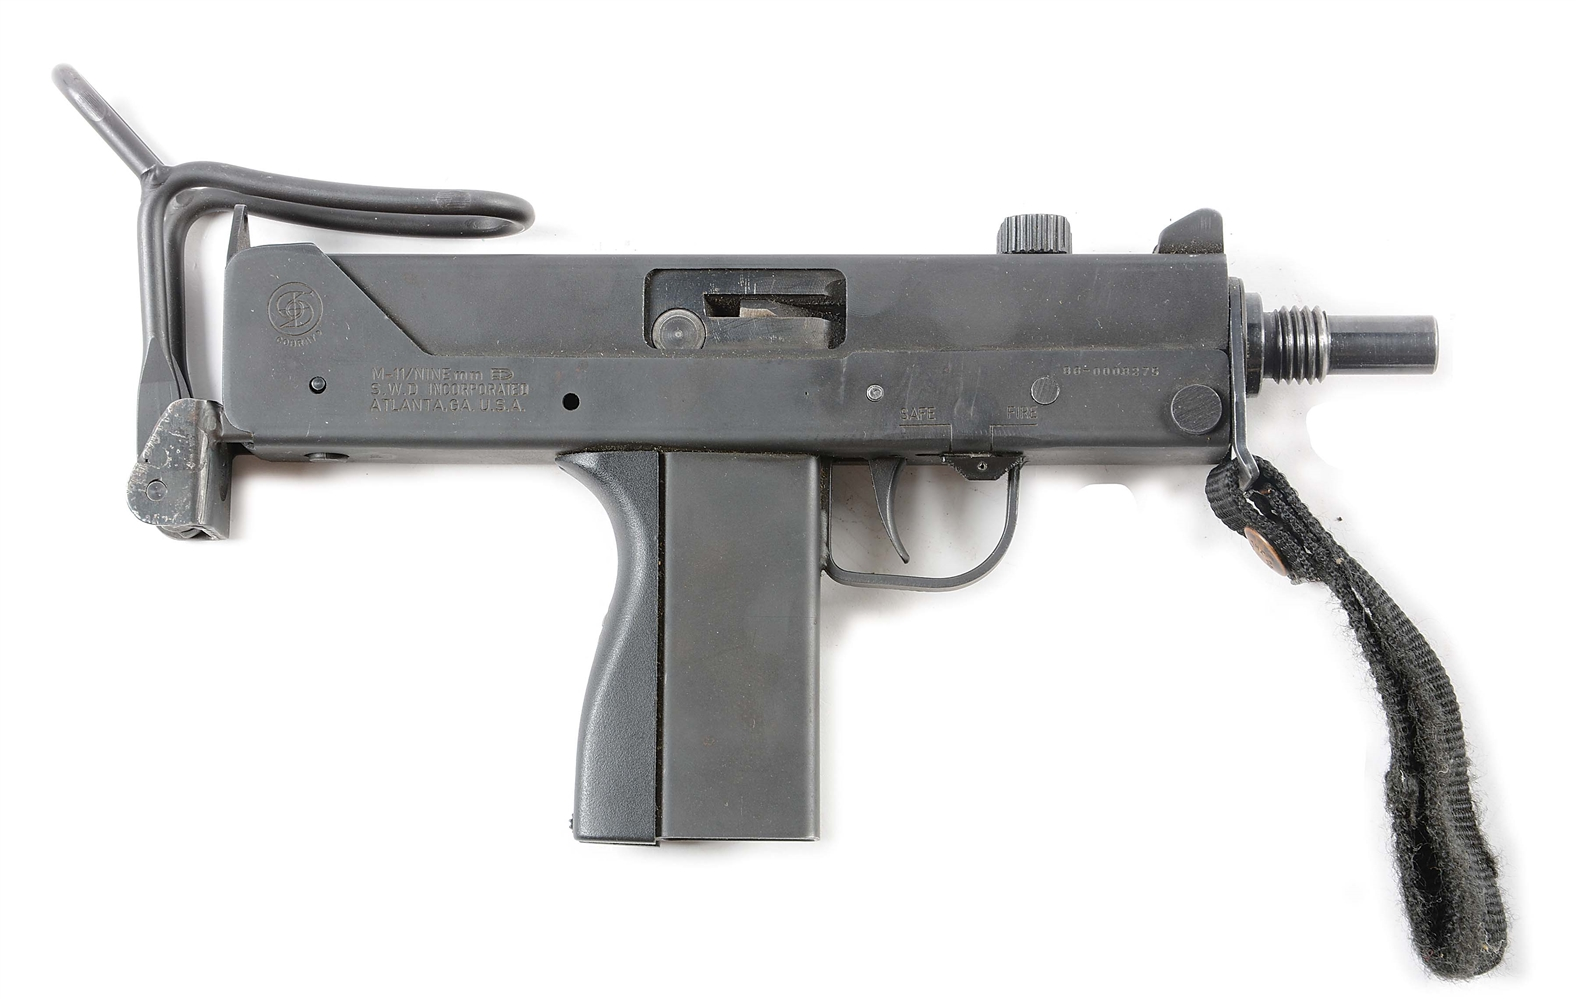 (N) EVER POPULAR SWD COBRAY M-11 MACHINE GUN (FULLY TRANSFERABLE)